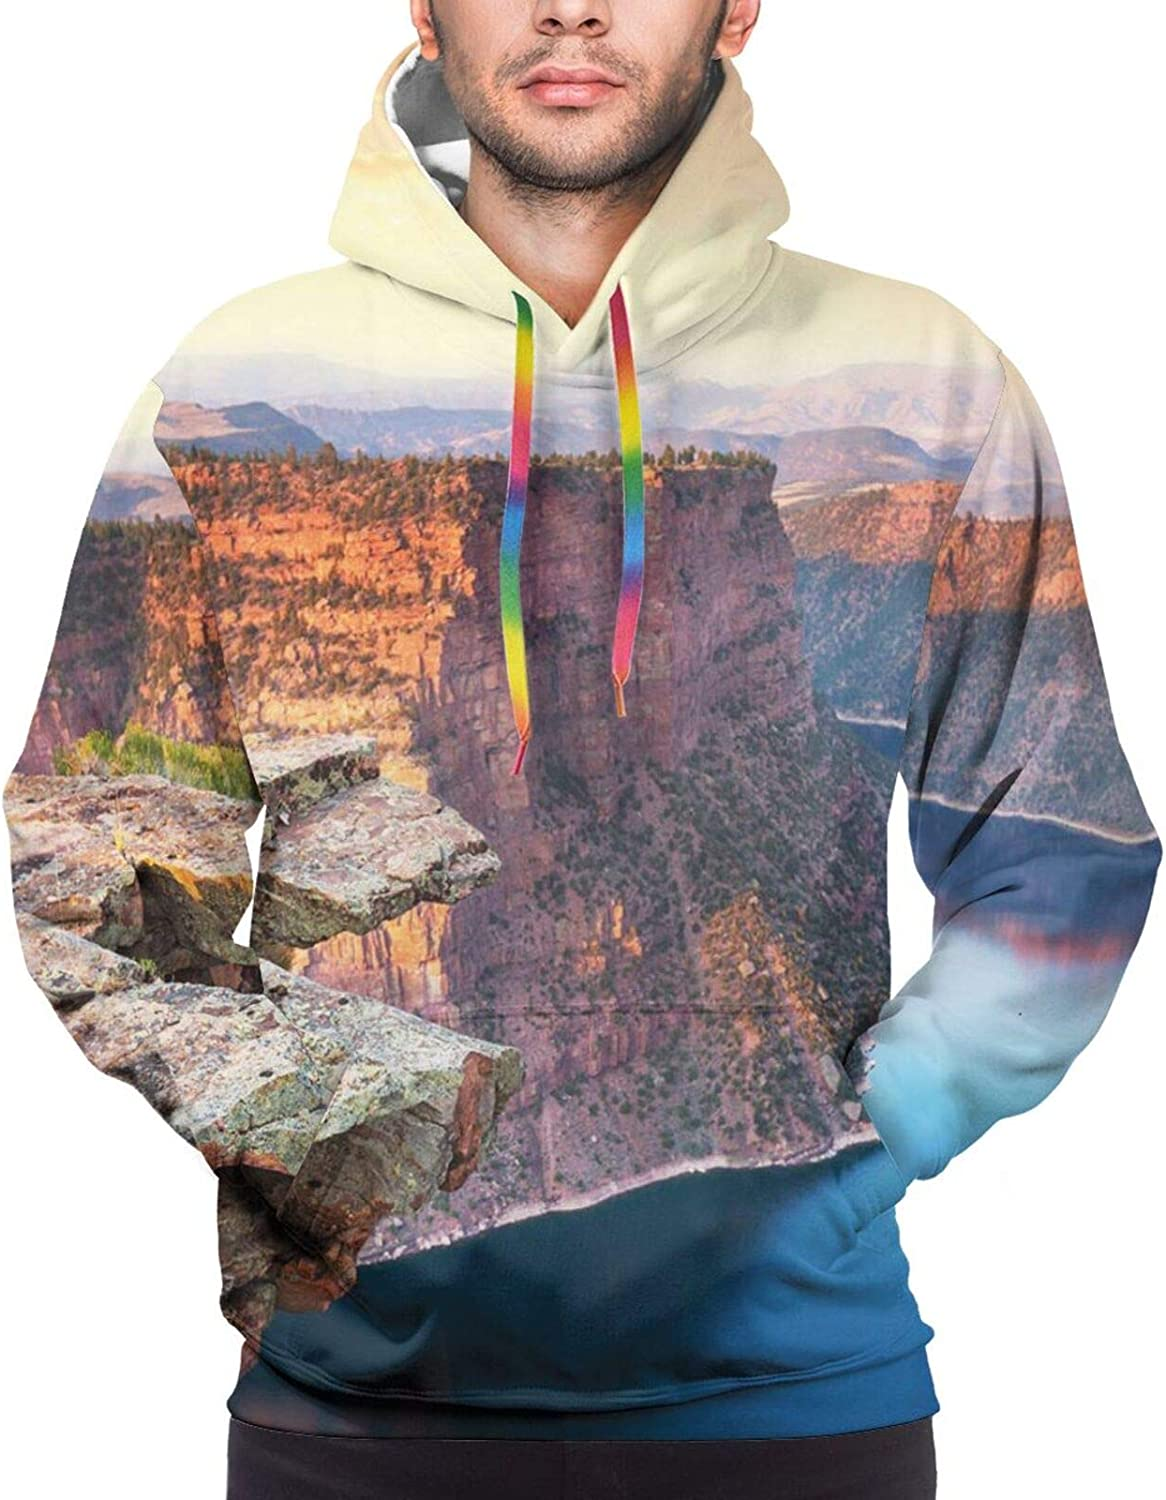 TENJONE Men's Hoodies Sweatshirts,Aerial View of Pine Forest by The Lake Beneath Mountain Pastoral Landscape